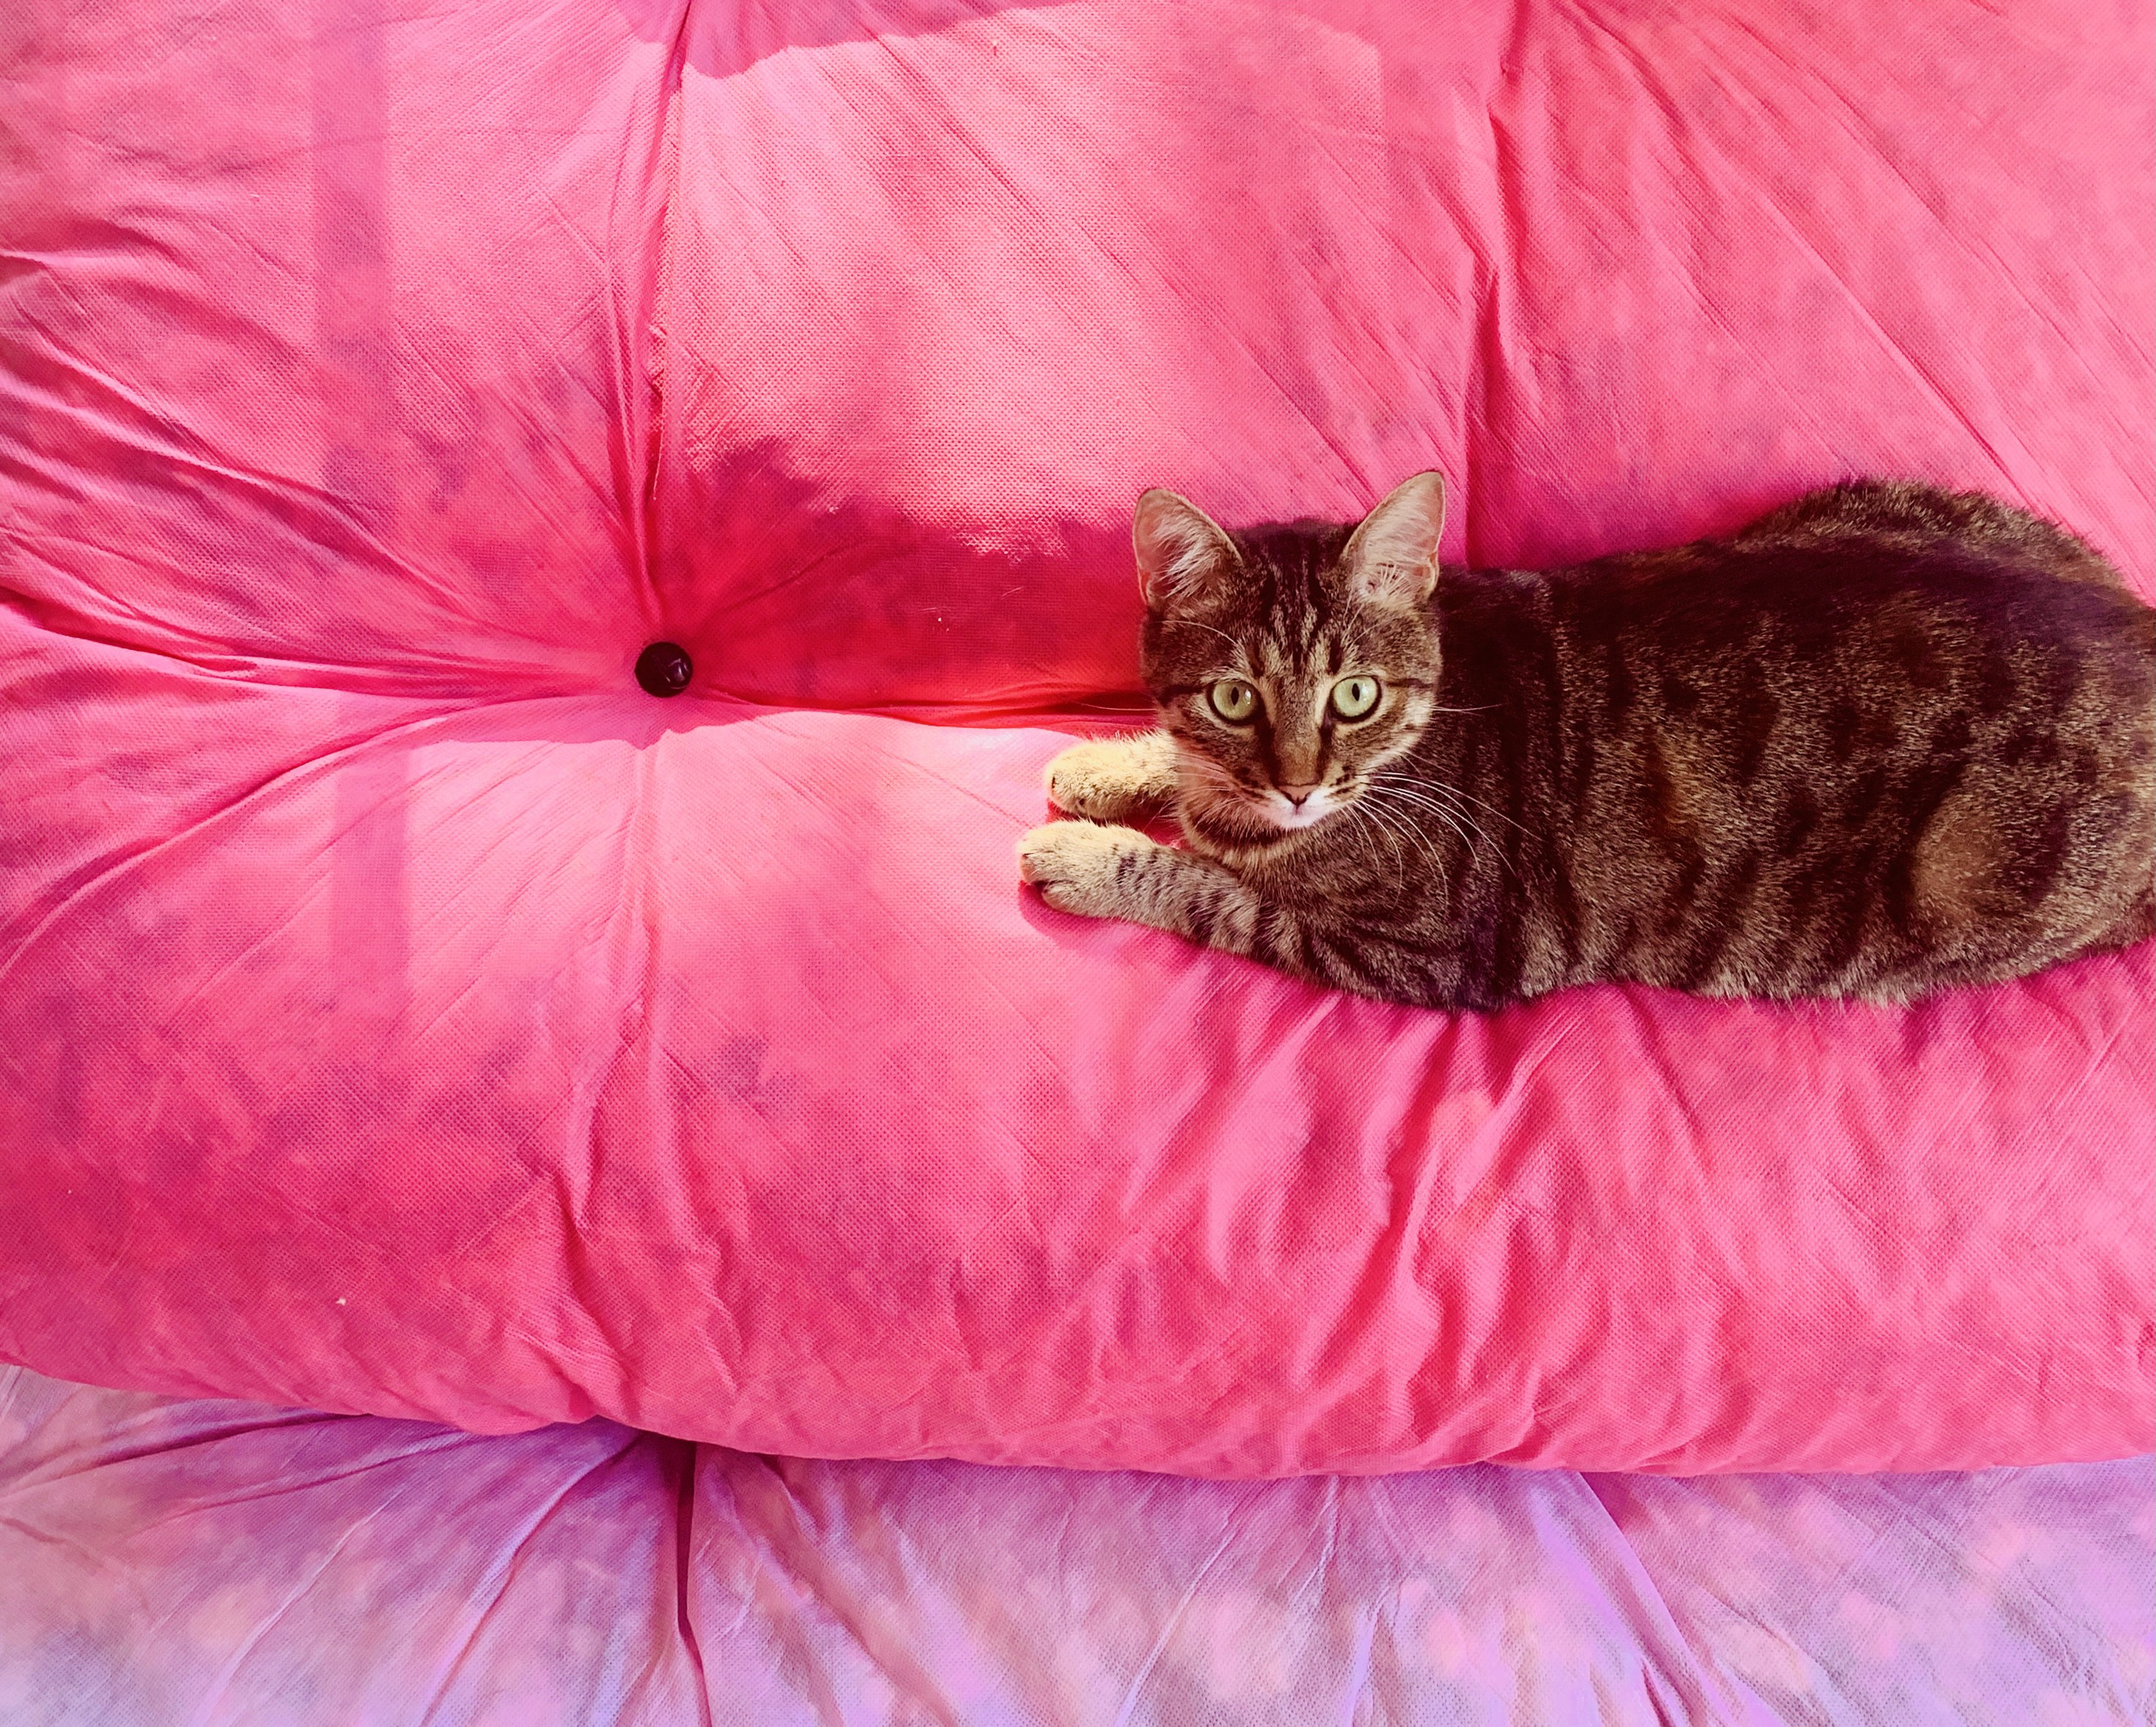 Cat laying down doing nothing on large pink pillows